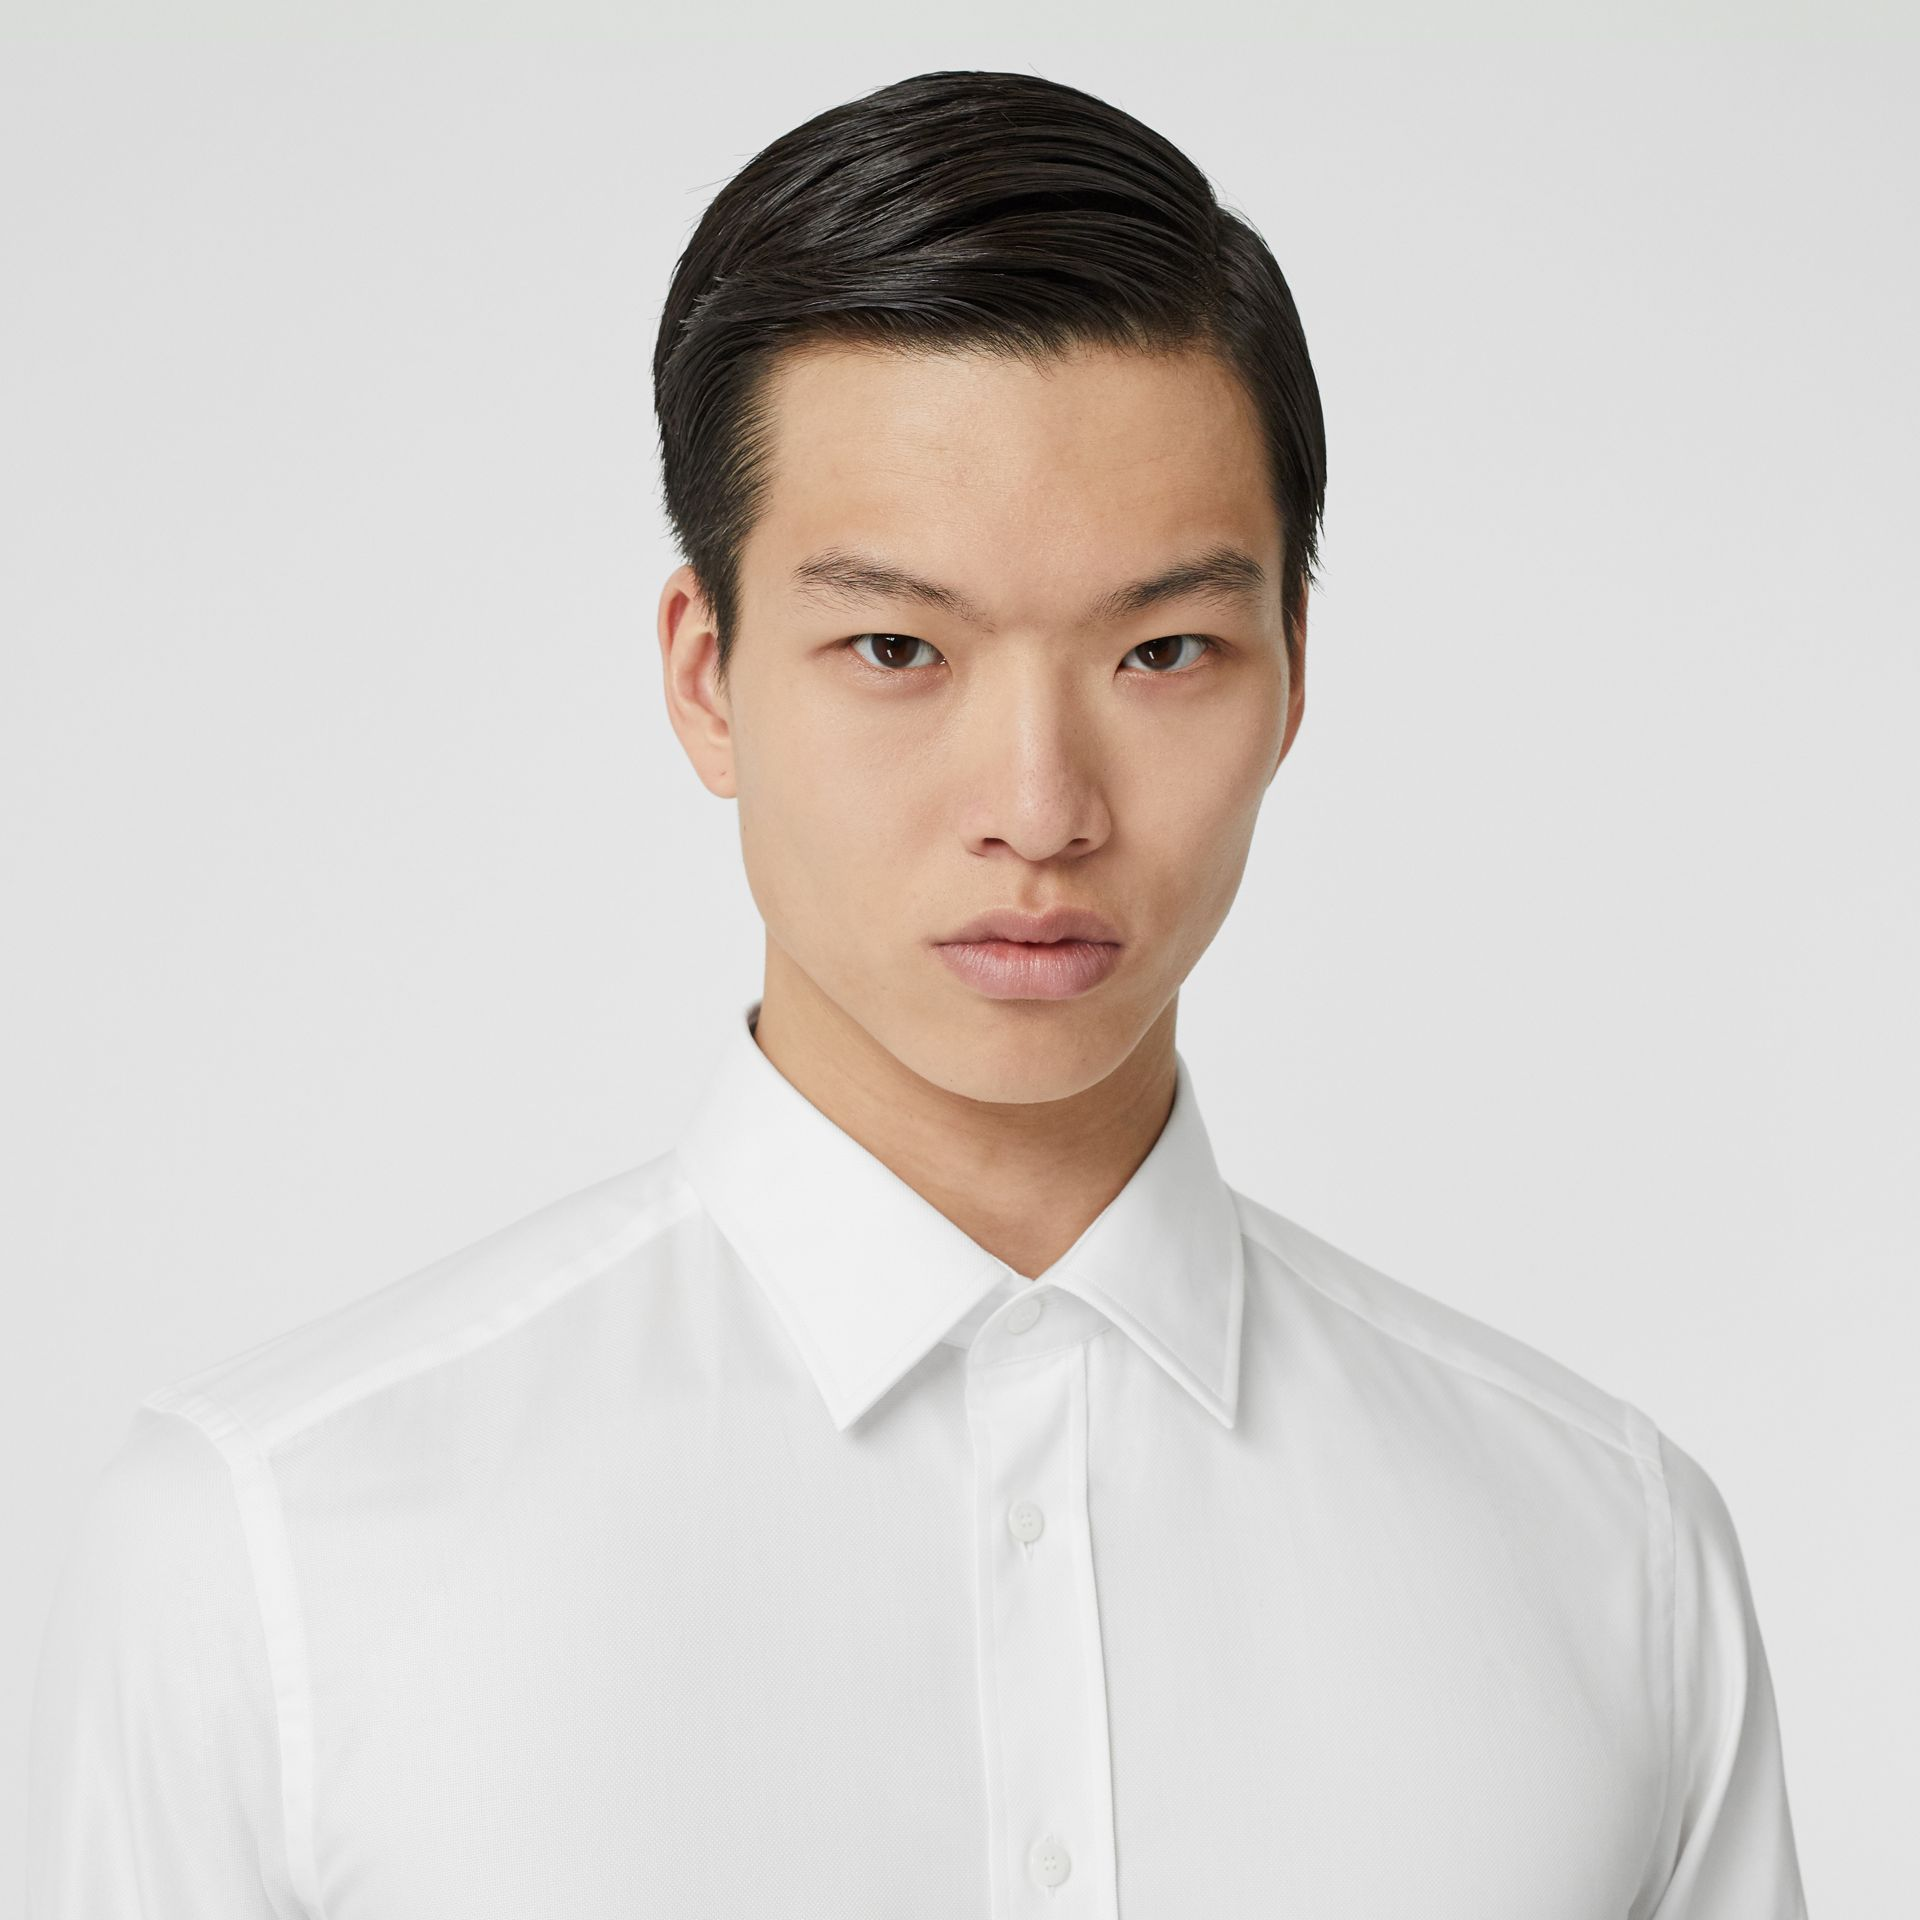 Classic Fit Monogram Motif Cotton Oxford Shirt in White - Men | Burberry - gallery image 7